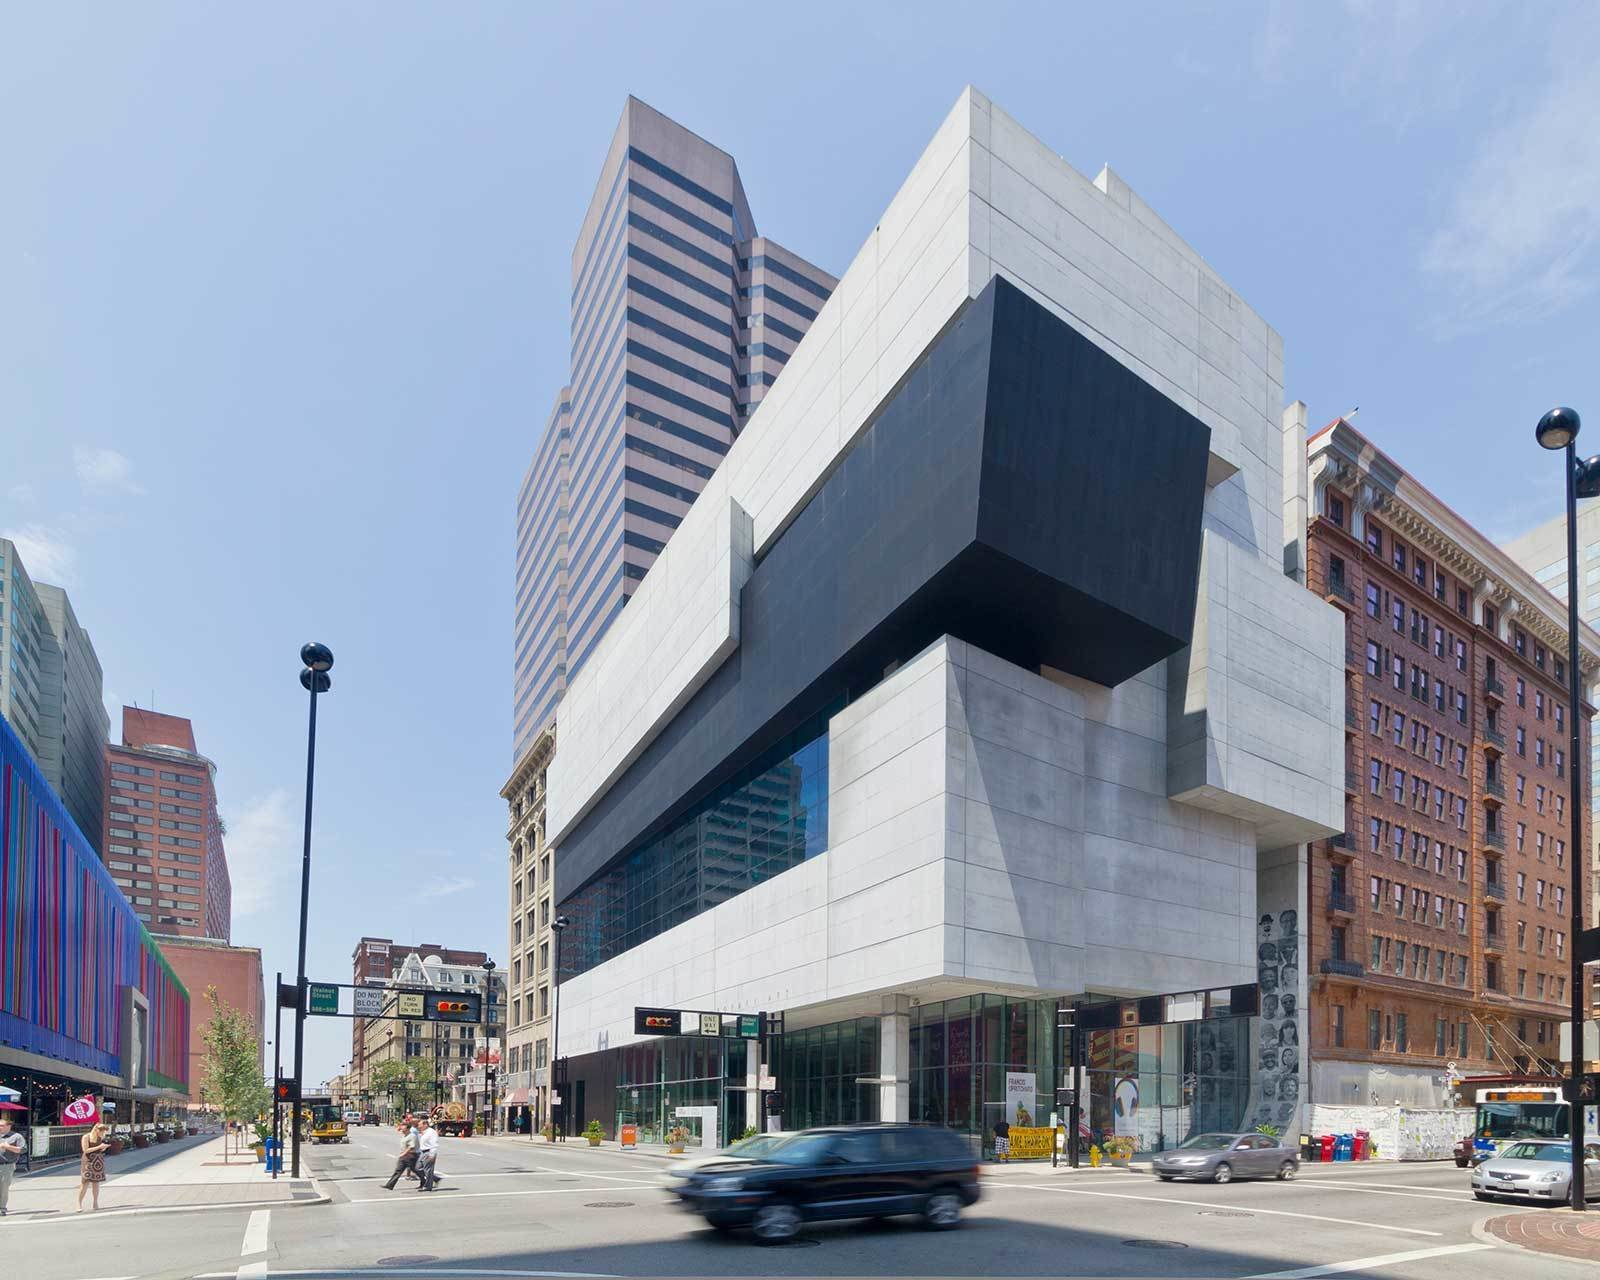 """The Rosenthal Center for Contemporary Art was Hadid's first American project. Hailed by the New York Times Architecture Critic Herbert Muschamp as  Photo 2 of 18 in """"Queen of the Curve"""": 18 Influential Works by Zaha Hadid"""